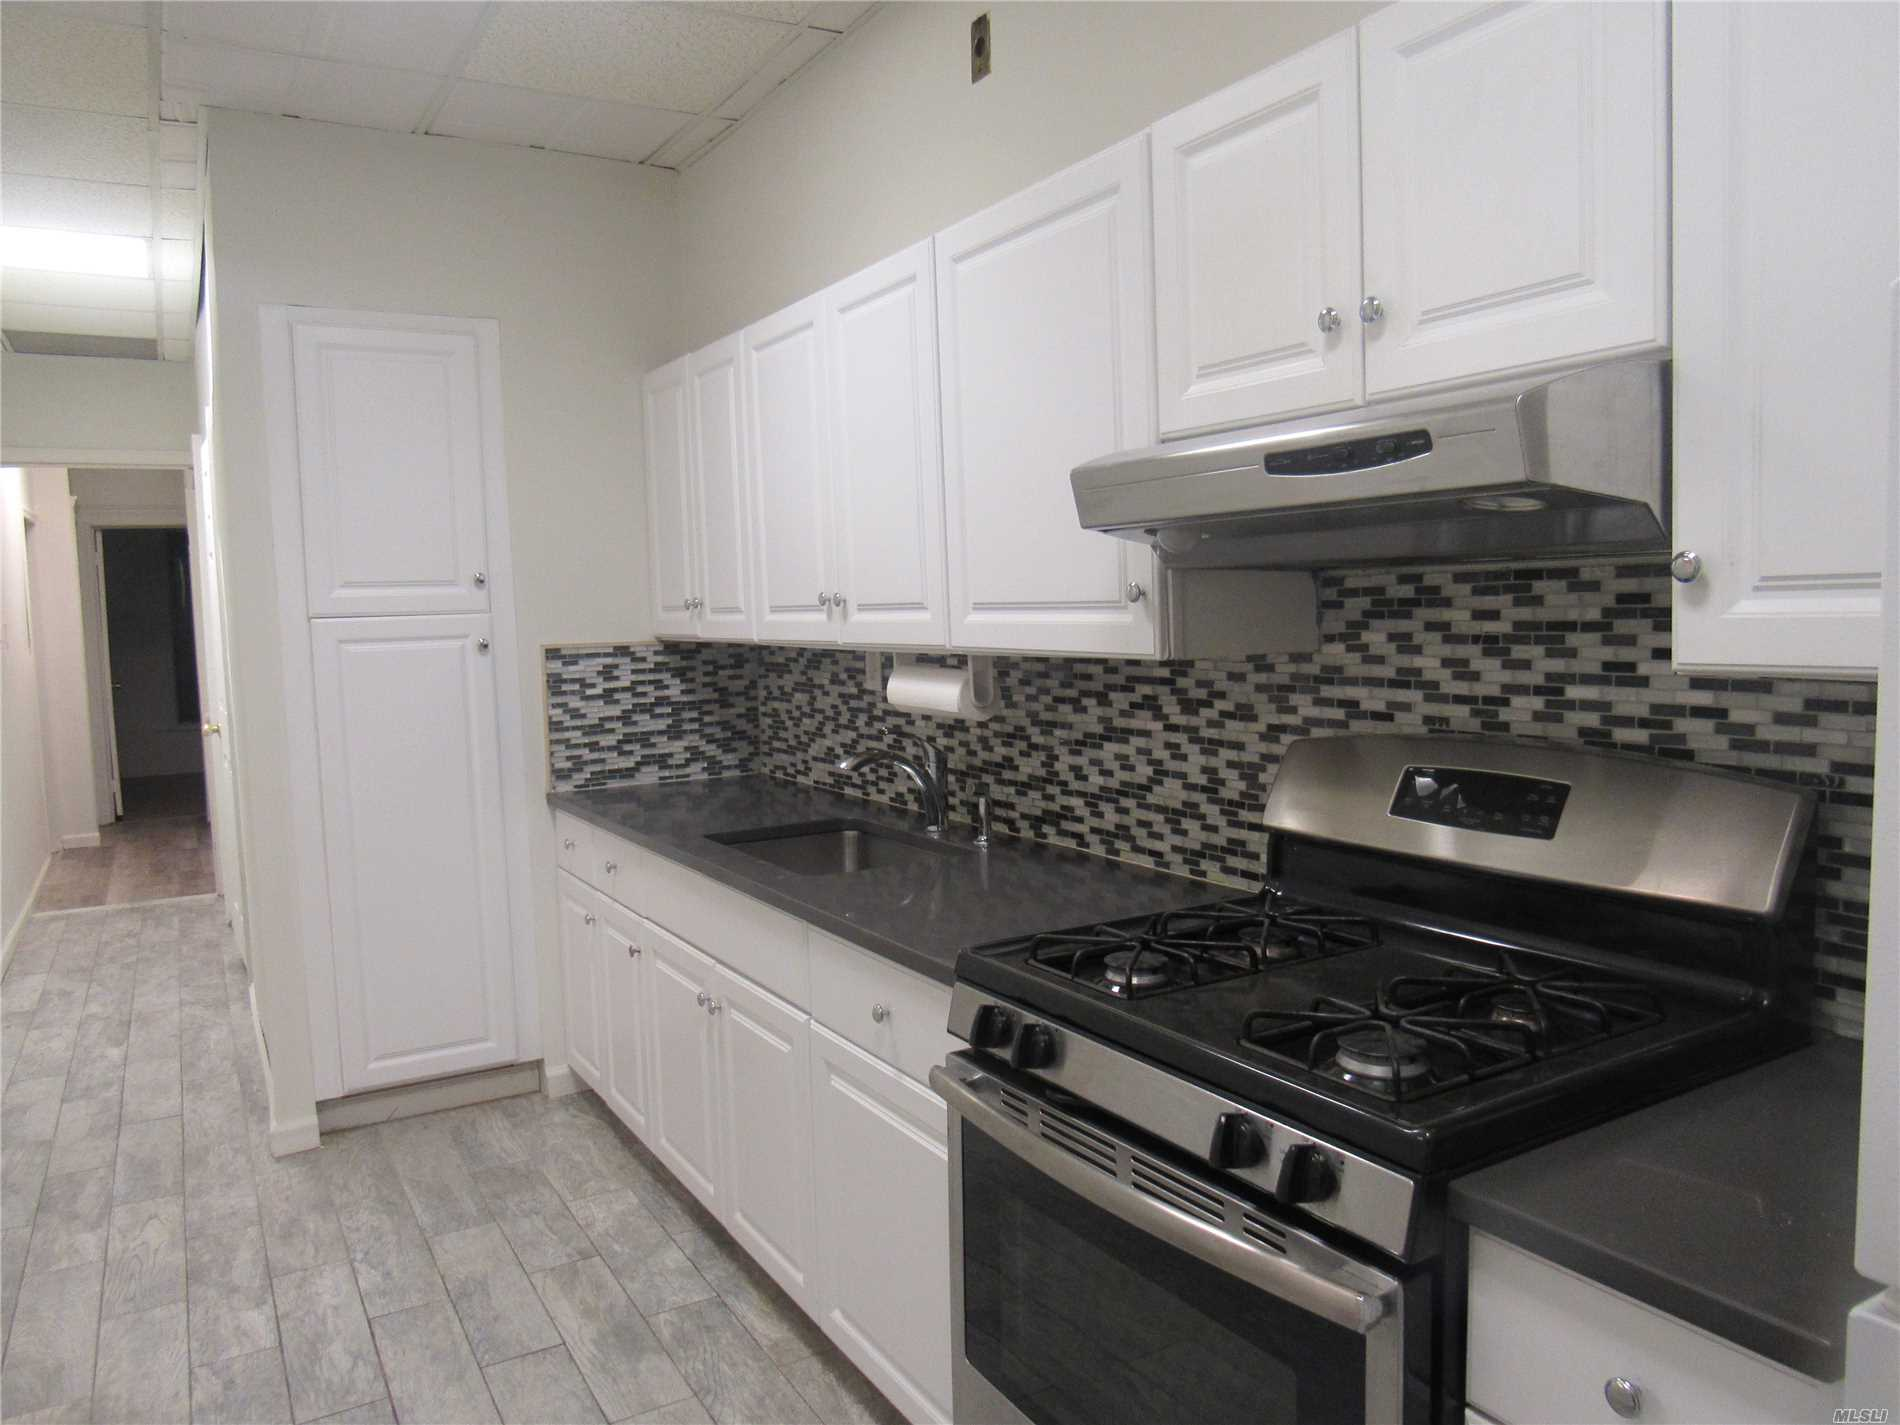 Huge Apartment With High Ceilings - Granite Countertops And Stainless Steel Appliances - Kitchen With Designer Tiles - Use Of Front Porch - Credit Check And Tax Returns Required - Will Be Available For Rent October 1 - Owner Will Consider Small Pet At Their Discretion